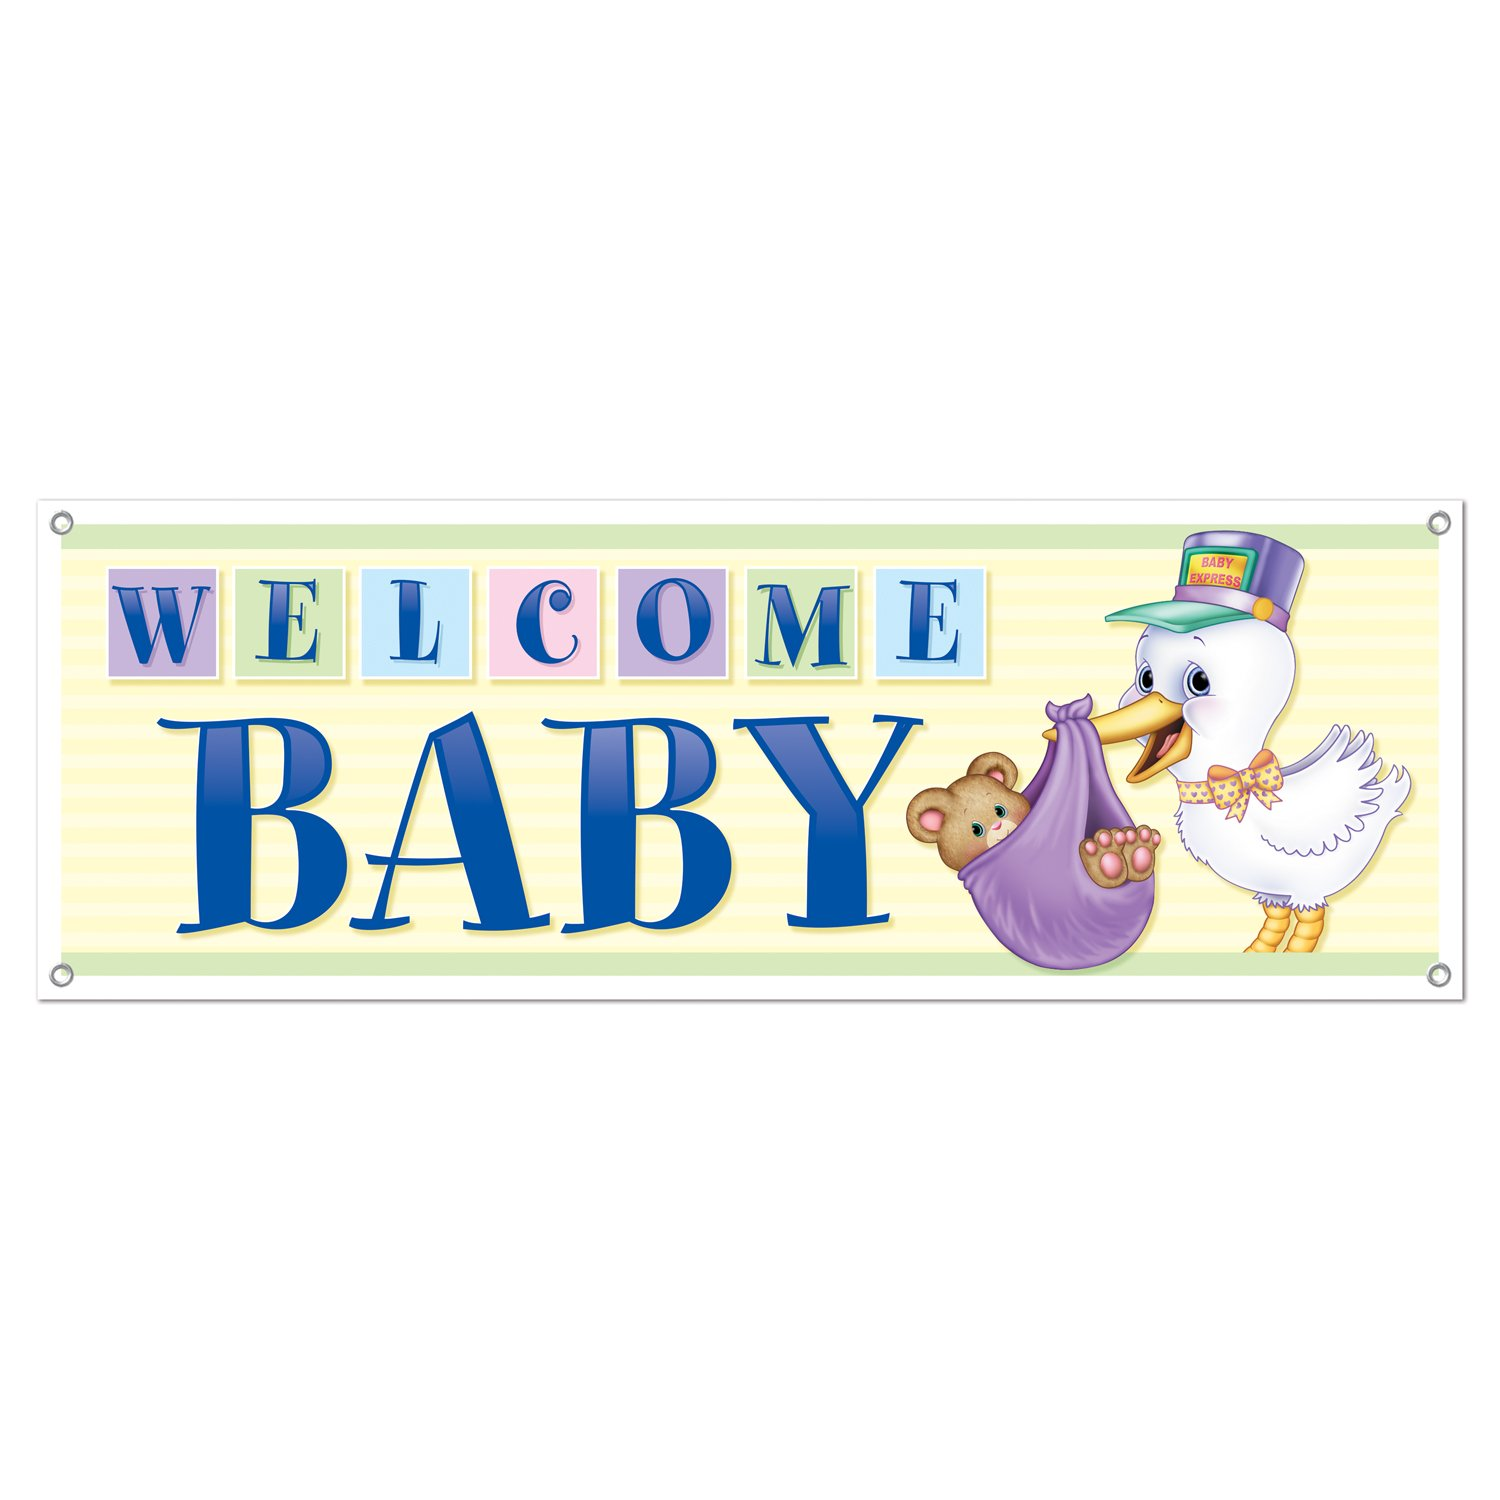 Welcome Baby Sign Banner Party Accessory (1 count) (1/Pkg).